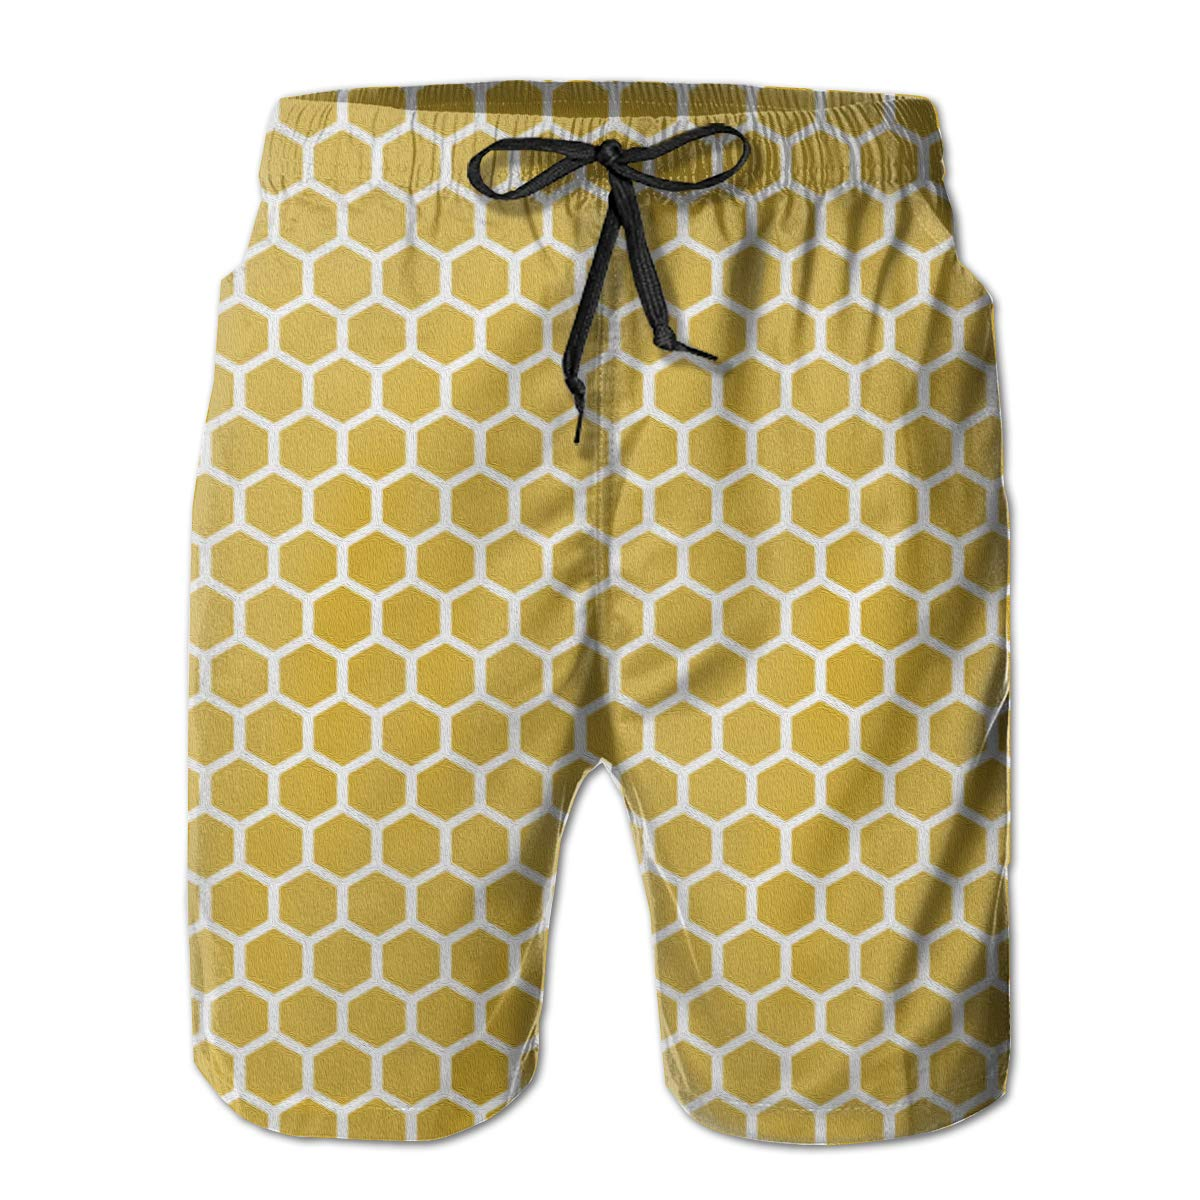 FASUWAVE Mens Swim Trunks Honeycomb Quick Dry Beach Board Shorts with Mesh Lining